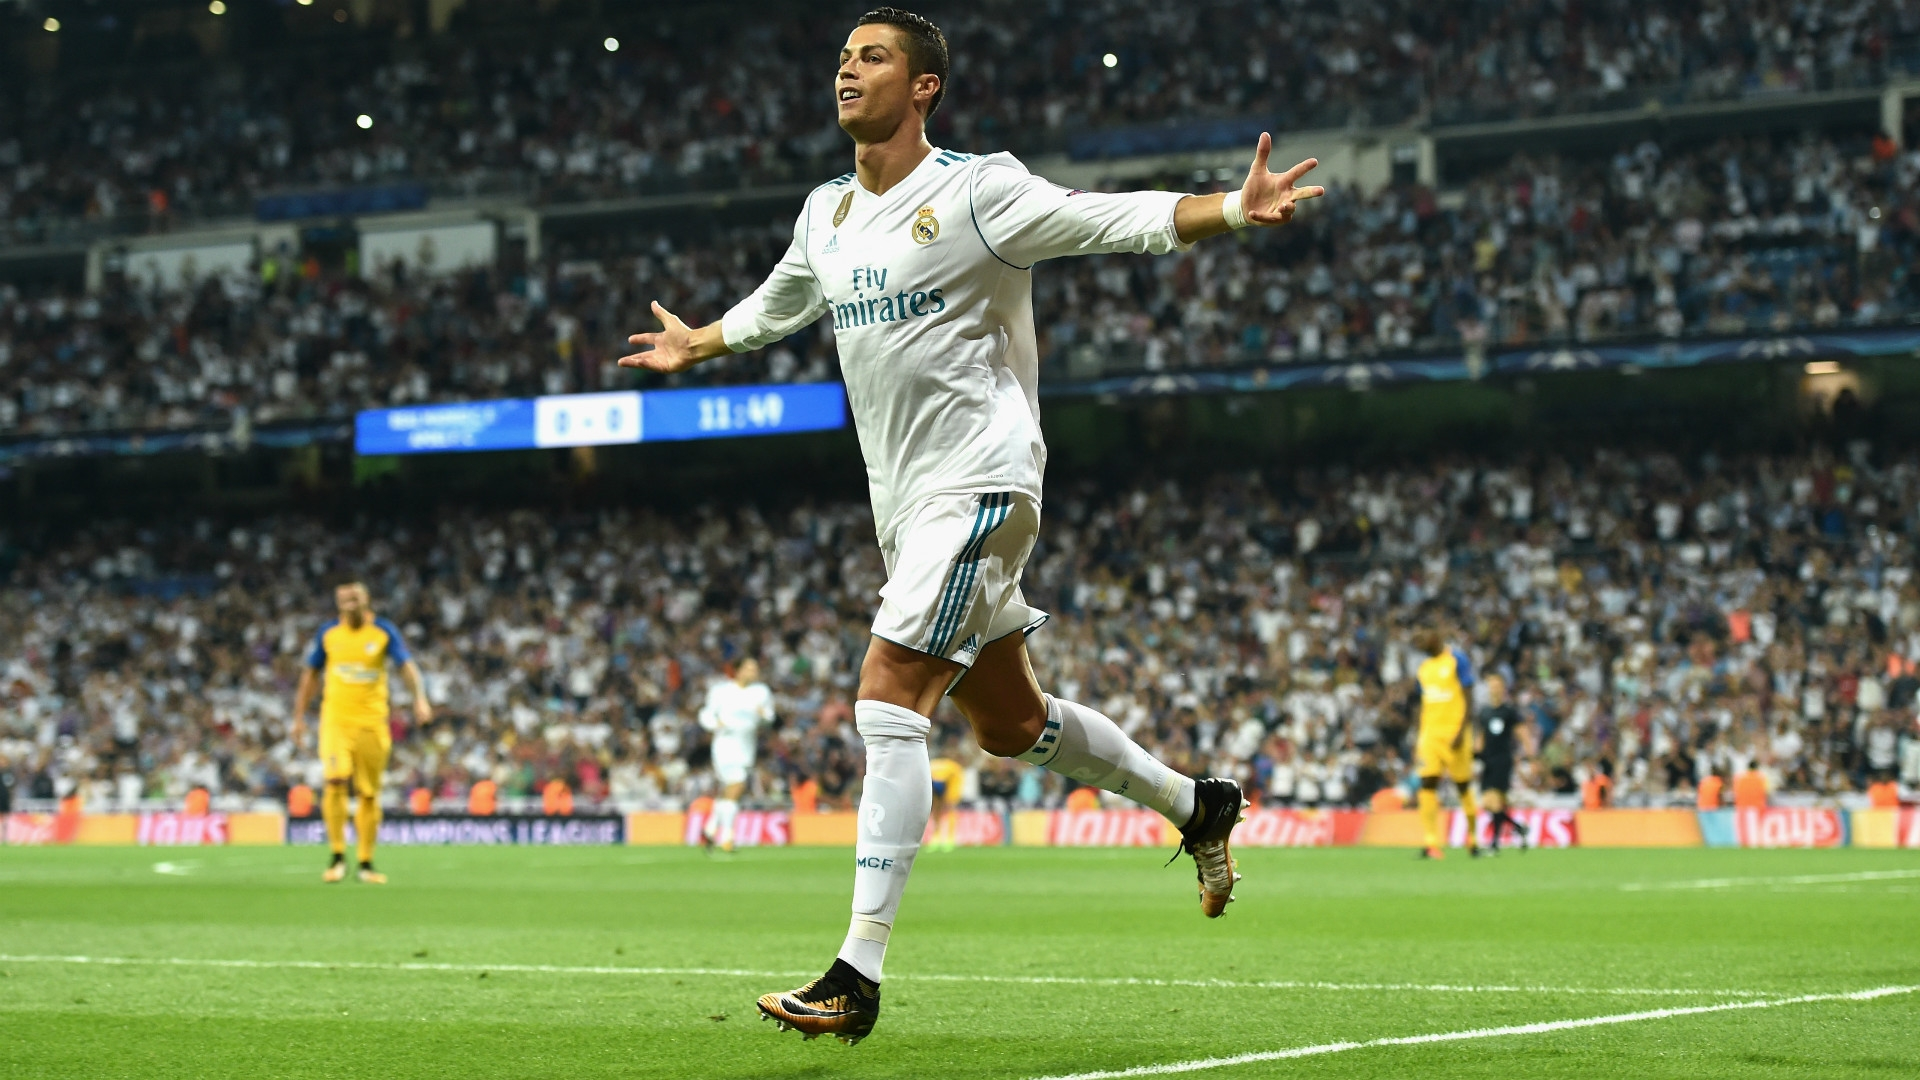 Cristiano Ronaldo scores twice for Real in Champions League